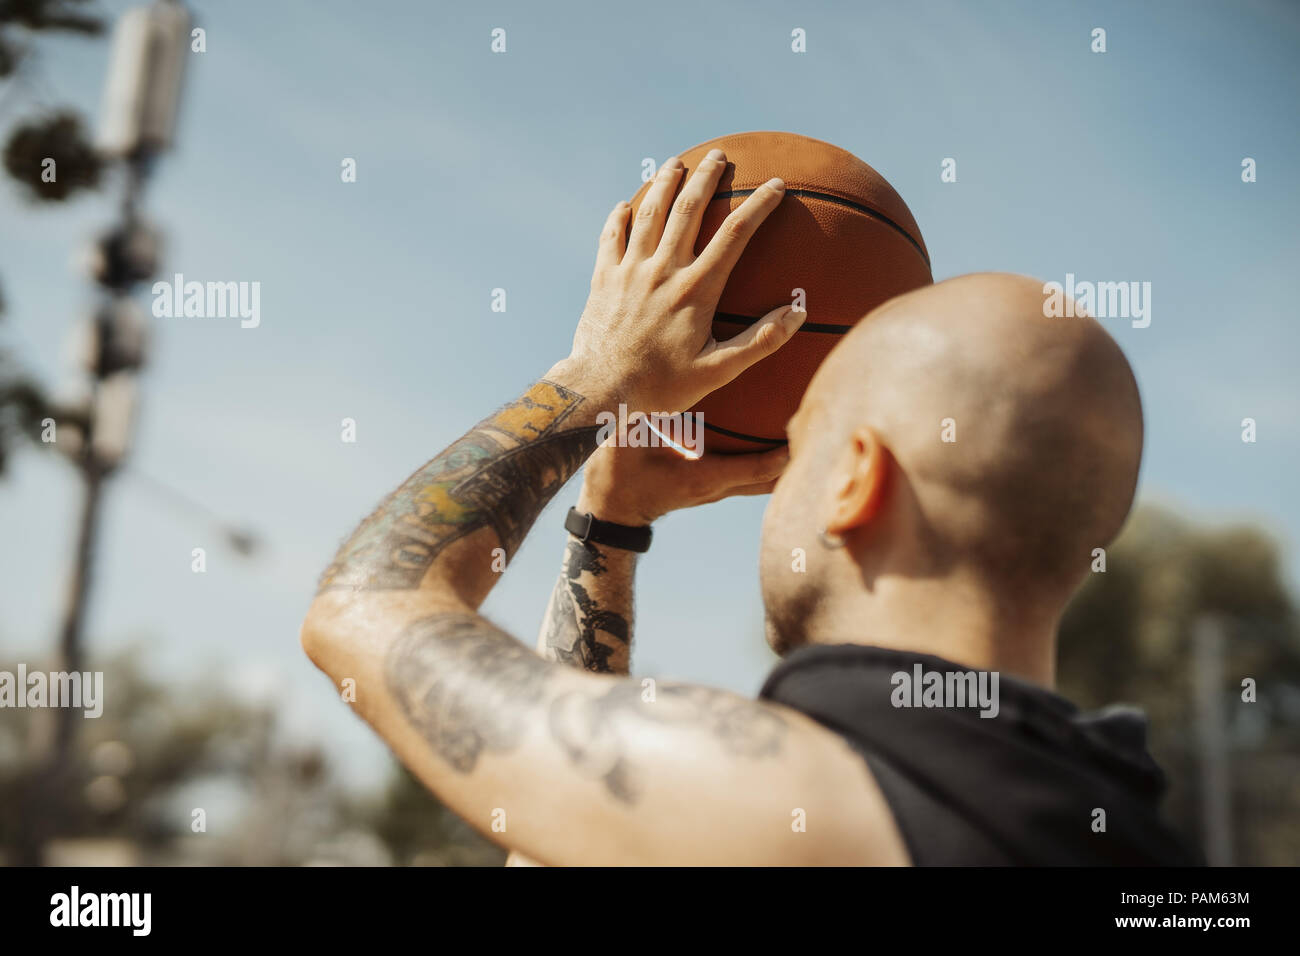 Close up of bald attractive man playing basketball on the basketball court. - Stock Image